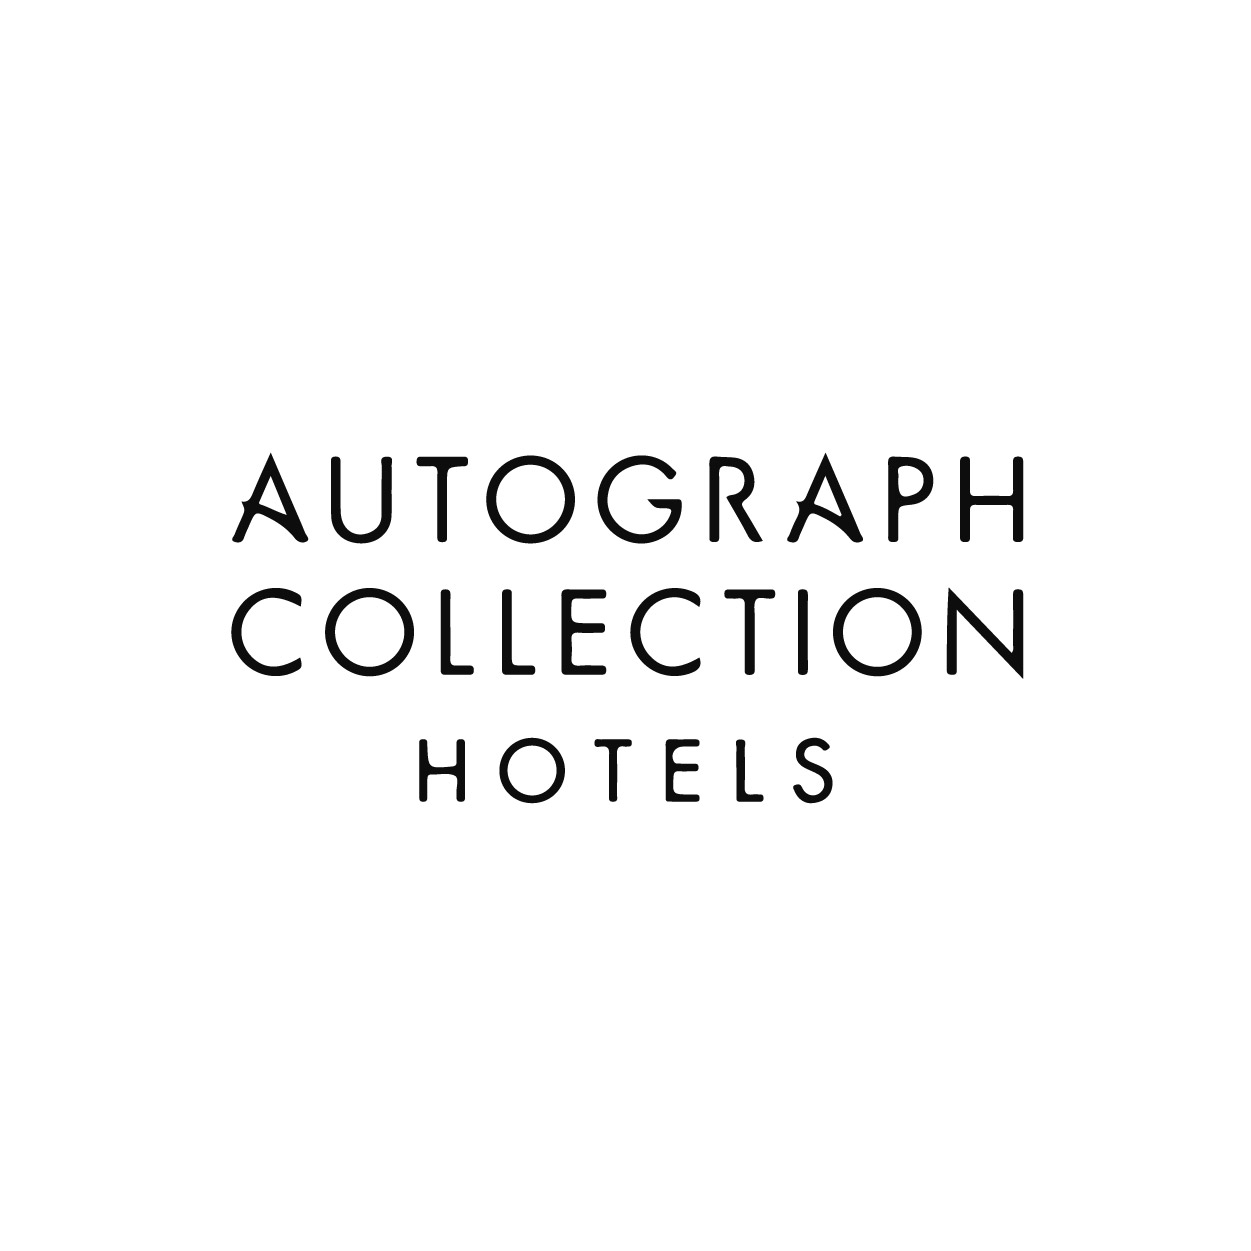 Autograph Collection Hotels Logo